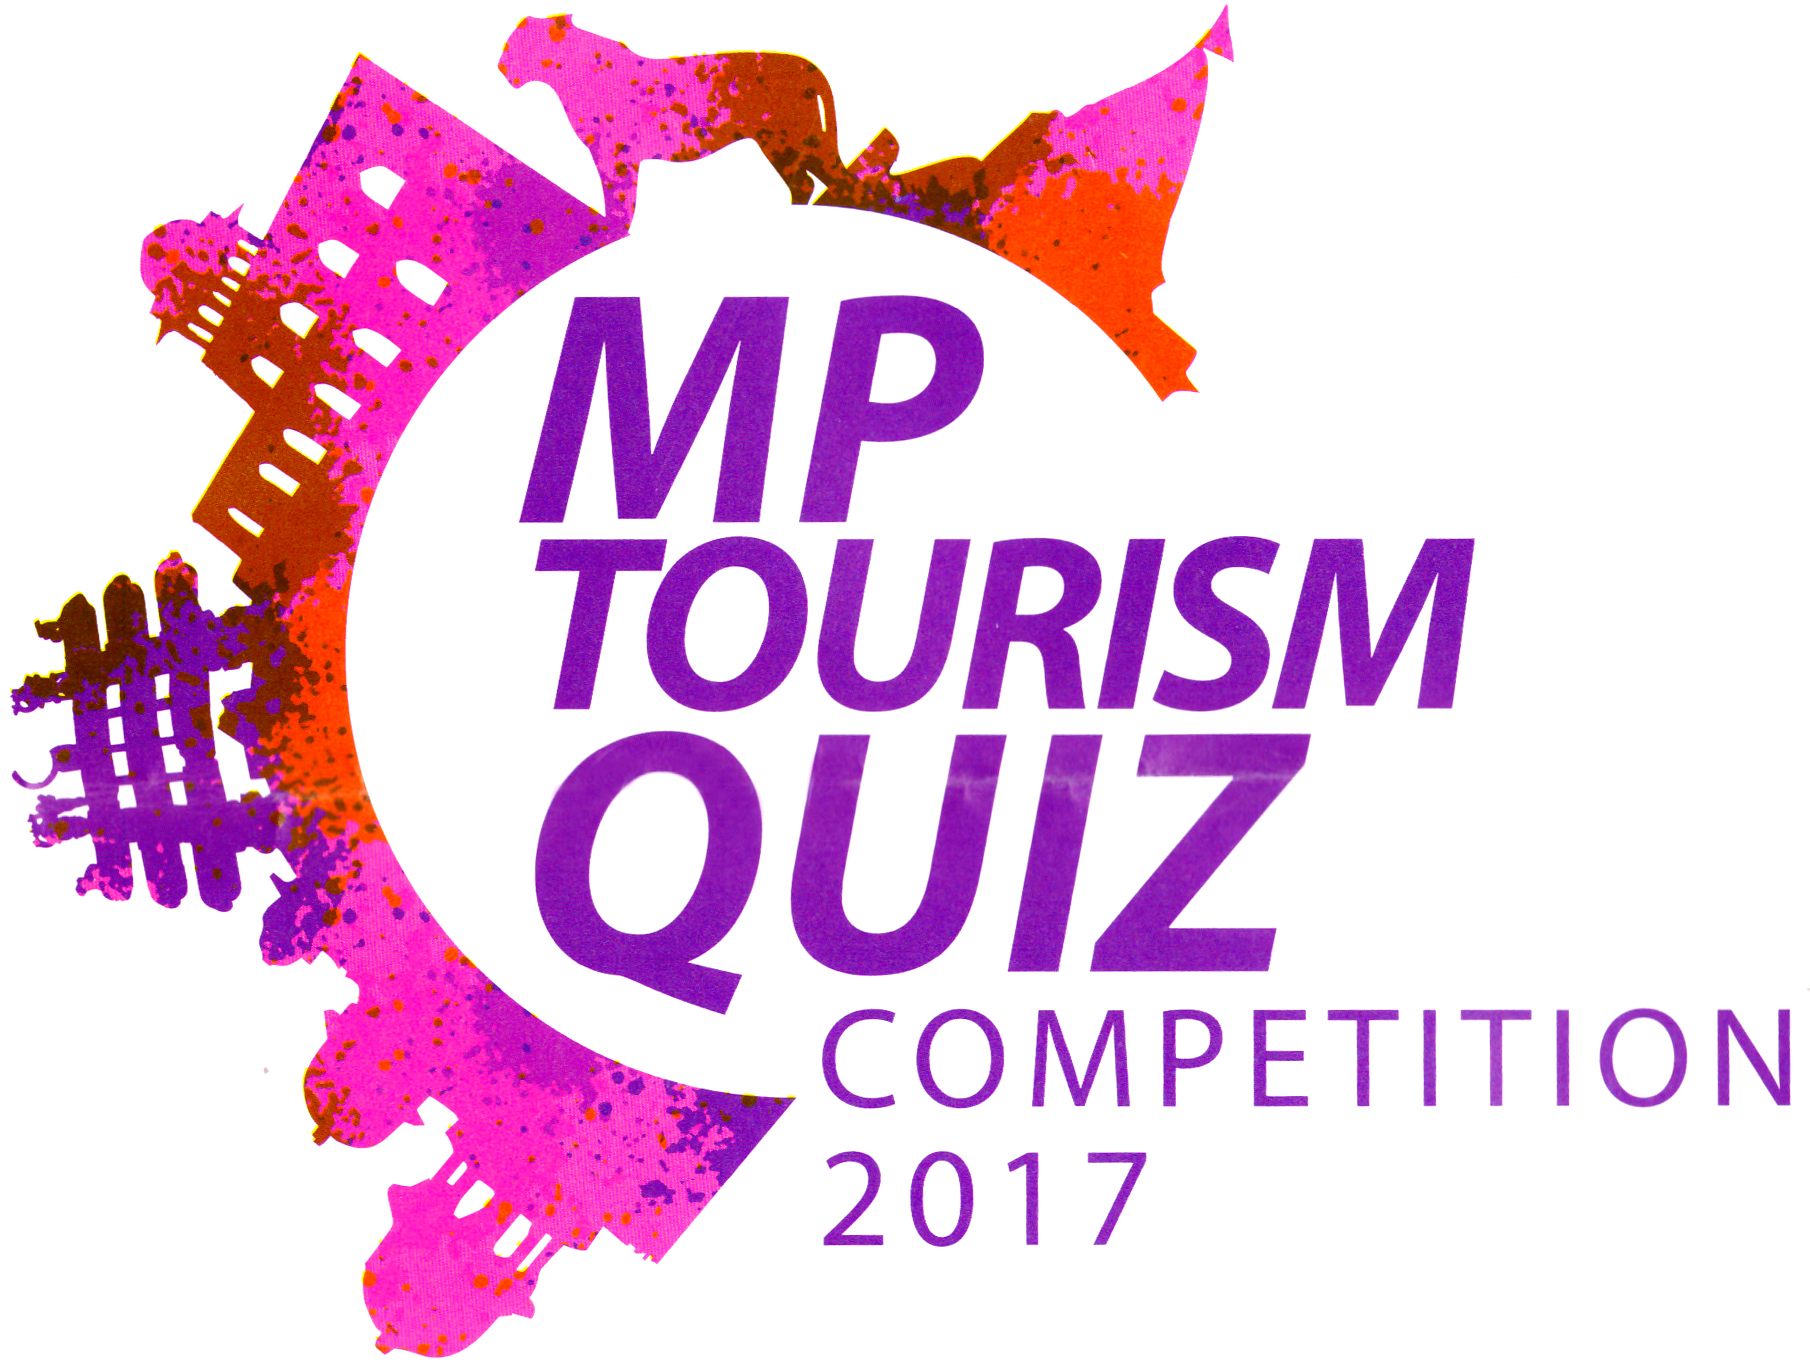 Madhya Pradesh Tourism School Quiz Contest on August 9